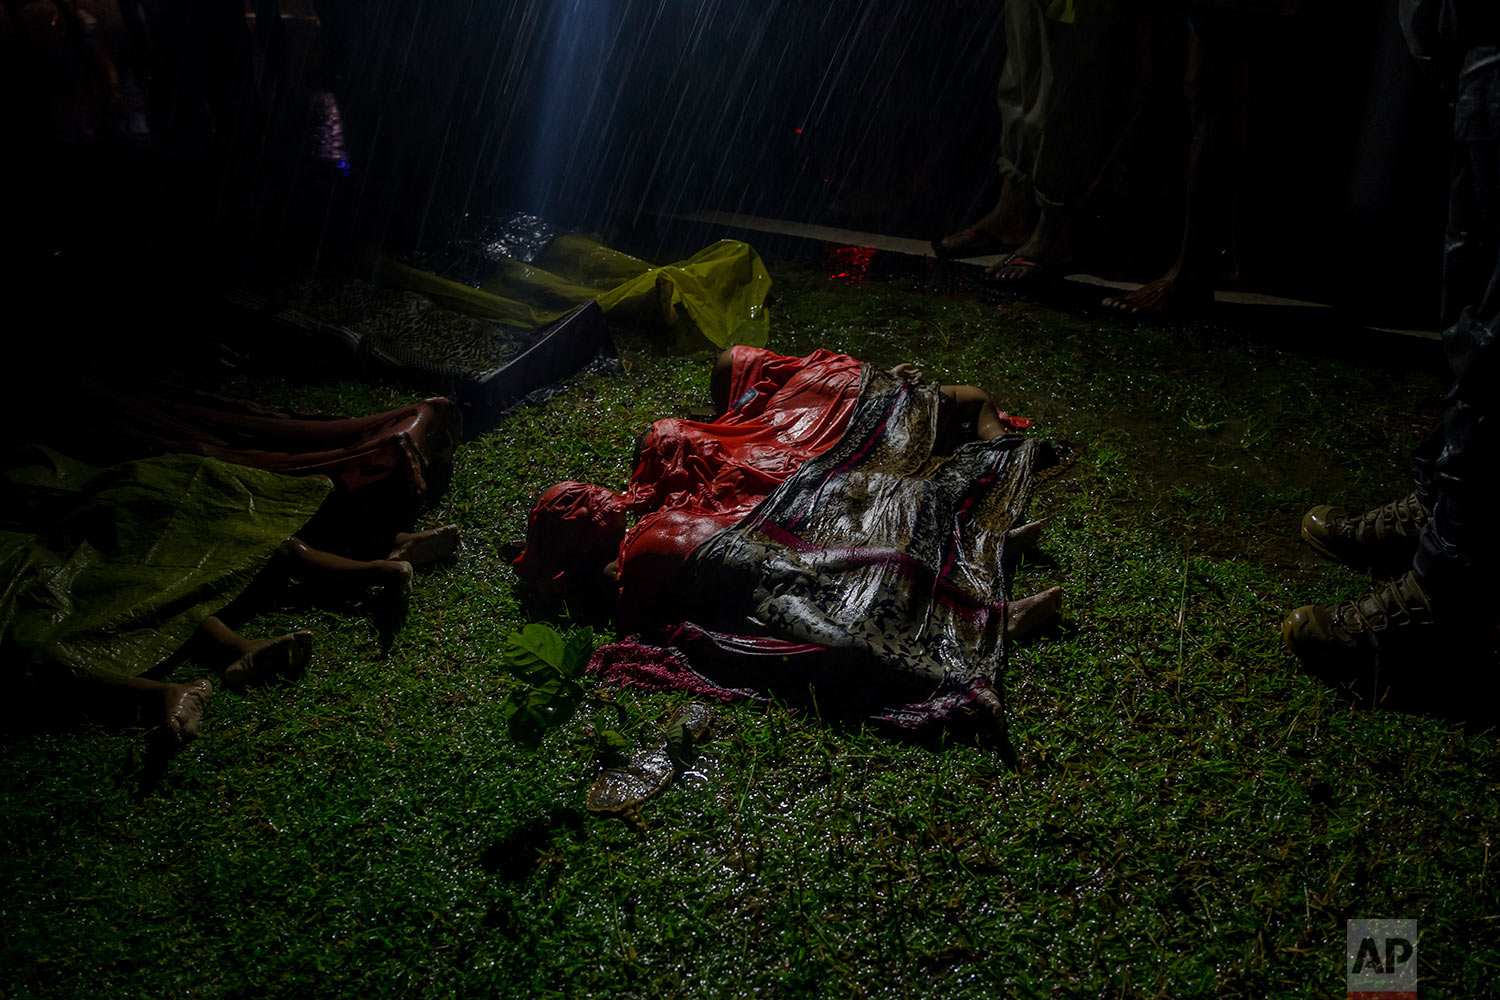 Bodies of Rohingya Muslim children, who died after their boat capsized in the Bay of Bengal as they were crossing over from Myanmar into Bangladesh, lies on a roadside near Inani beach, in Cox's Bazar district, Bangladesh, Thursday, Sept. 28, 2017. (AP Photo/Dar Yasin)